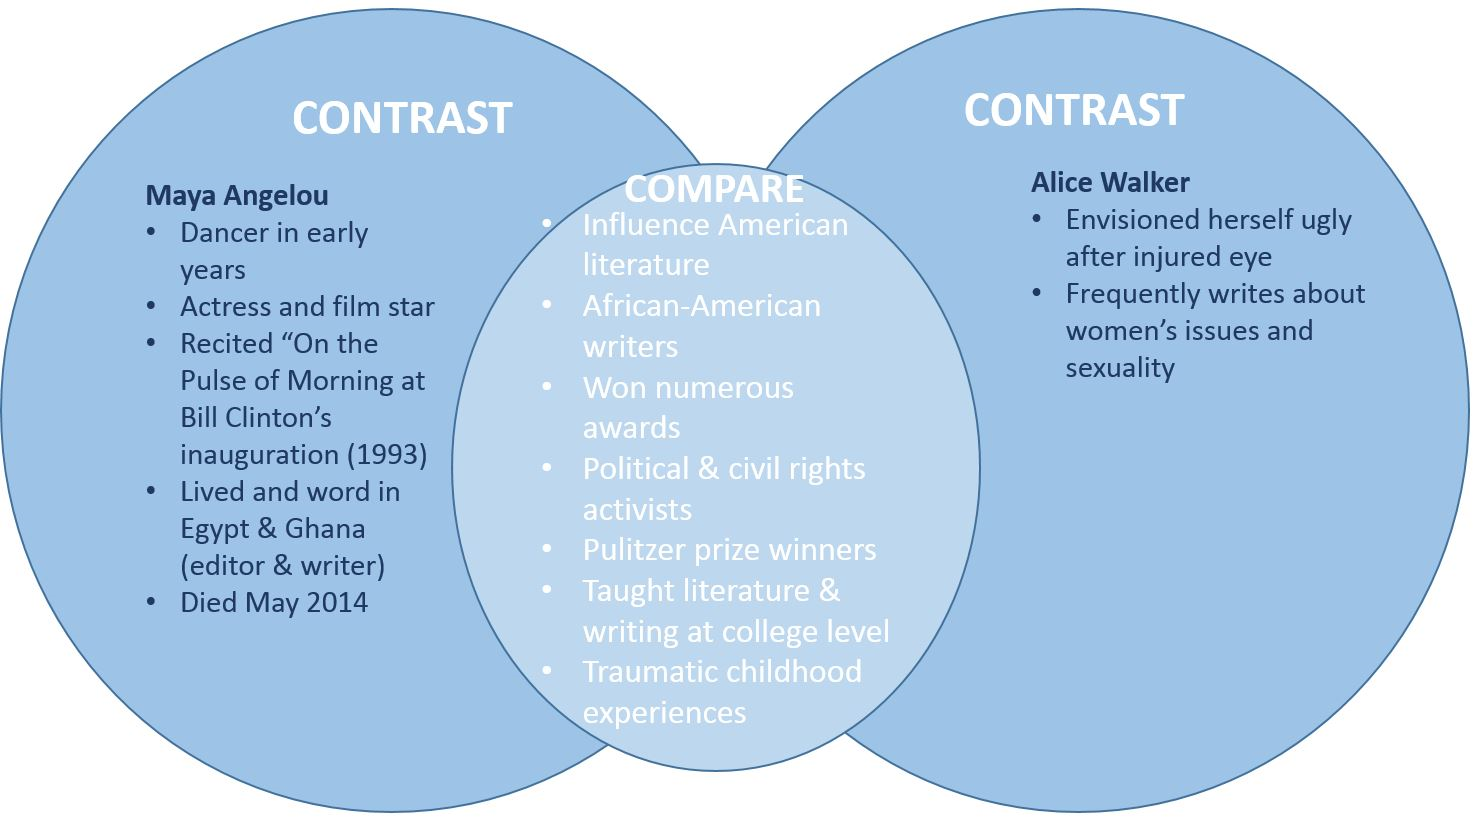 the best compare and contrast essay You're looking for a great compare and contrast essay topic to kick start your assignment how can you choose an interesting topic that's simultaneously narrow yet broad enough to provide you with plenty of great material in this blog post, i'll give you 70 compare and contrast essay topics i've also.